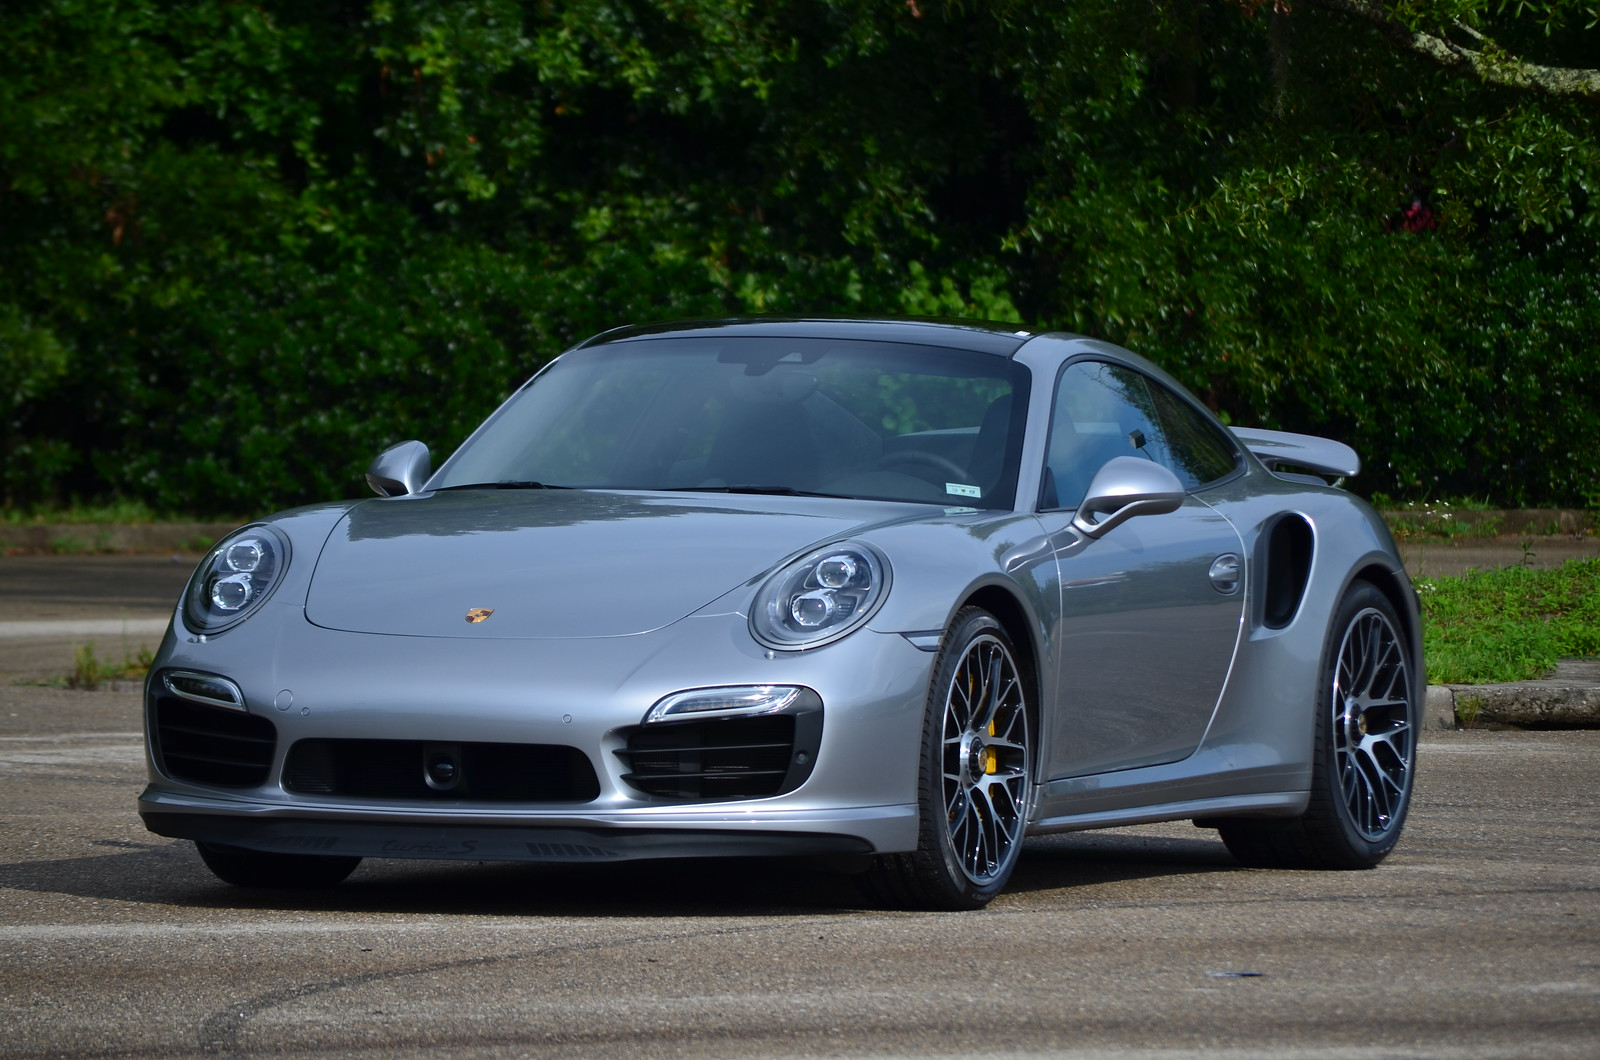 2015 Turbo S Coupe Gt Silver Loaded And Perfect Capital Porsche Fl 205k Msrp Rennlist